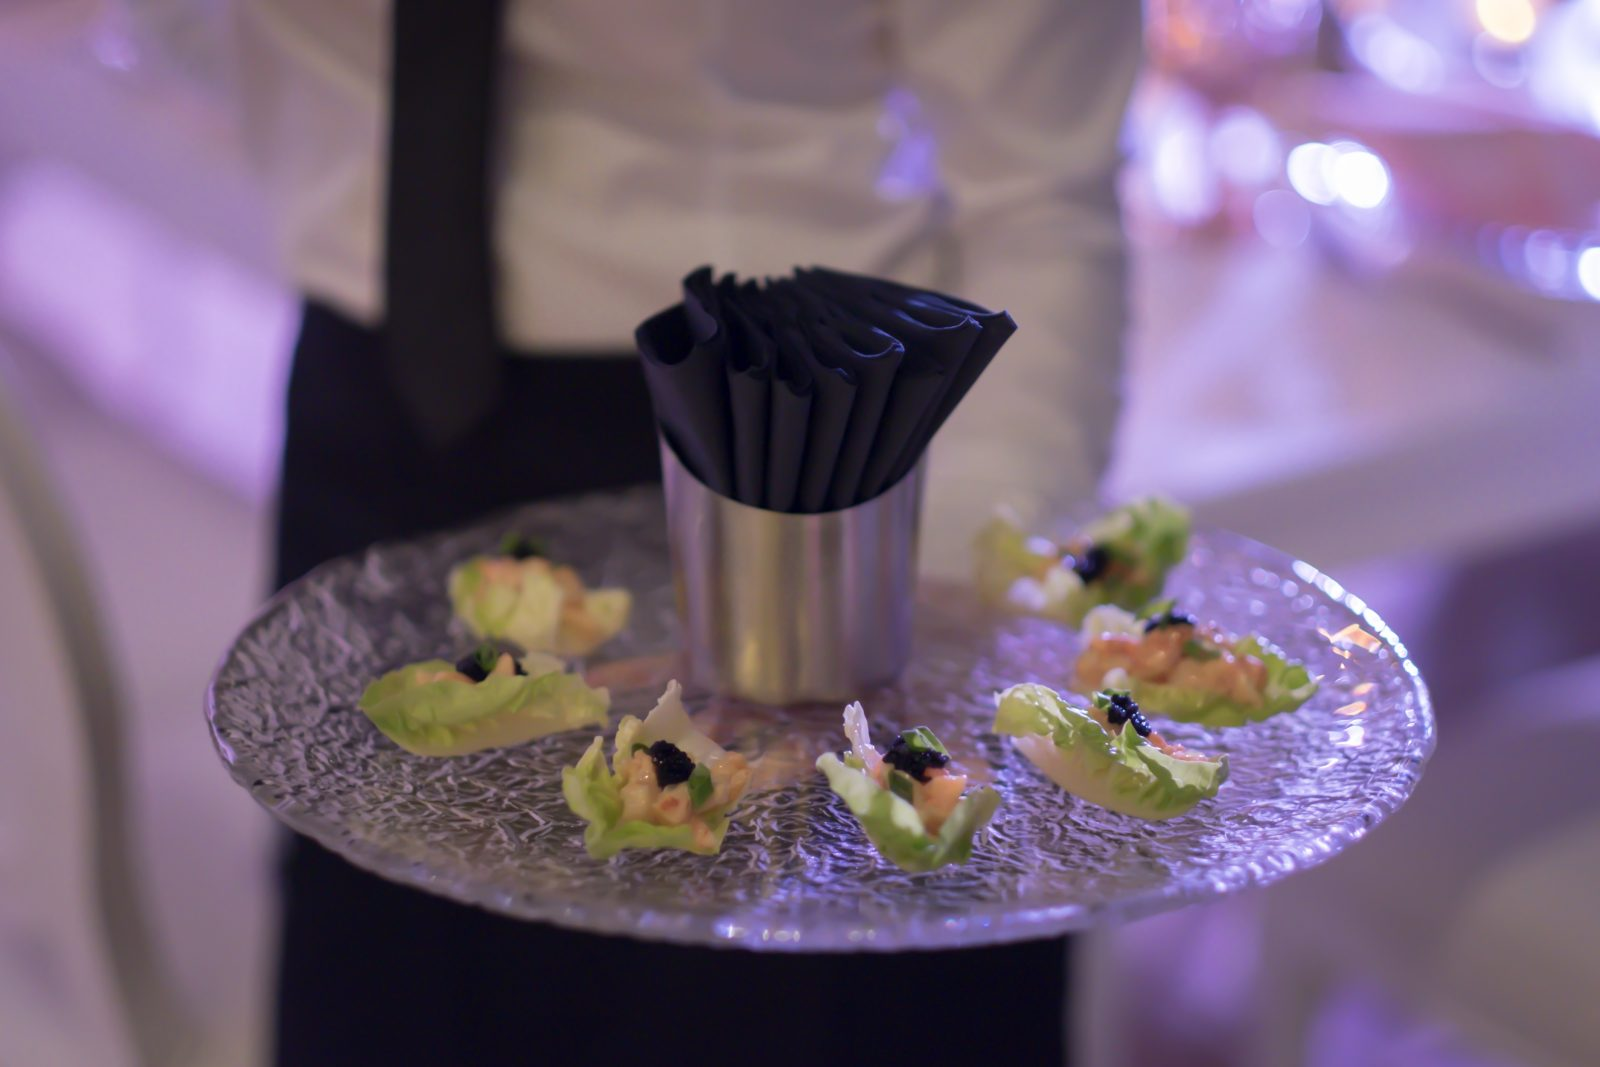 Canapés served on a glass tray